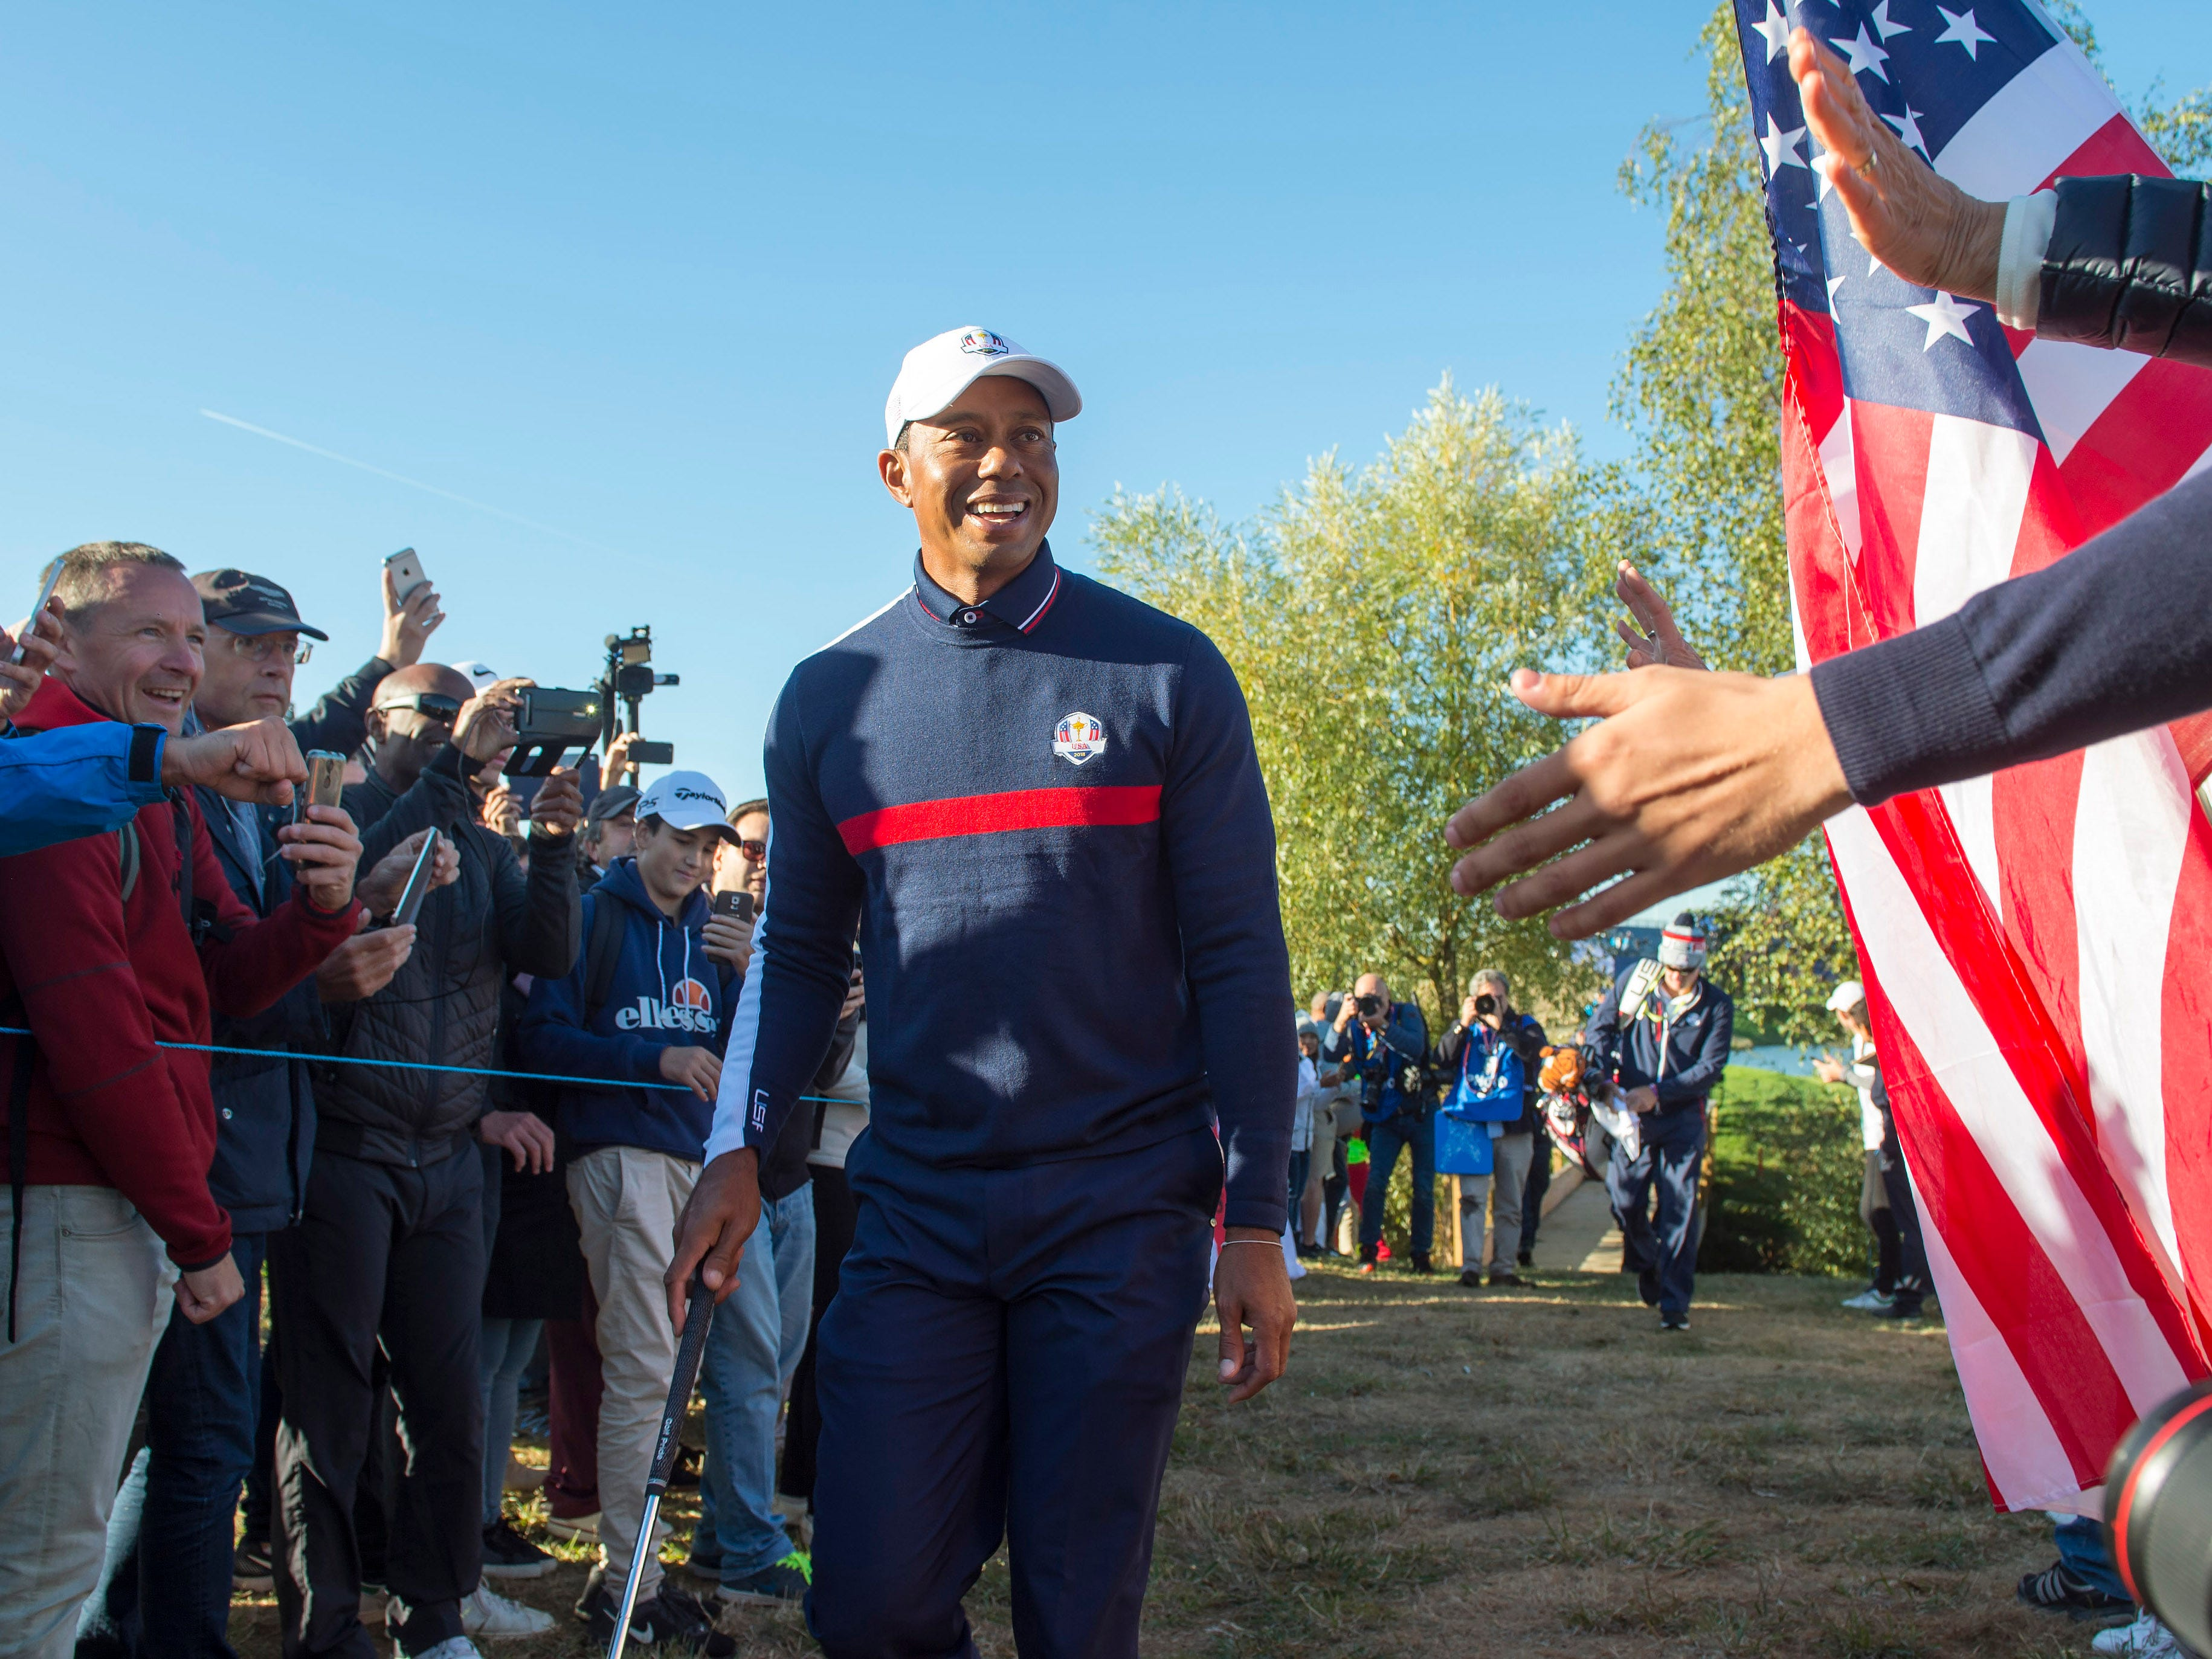 Tiger Woods smiles as he is cheered by spectators during a Ryder Cup practice round.